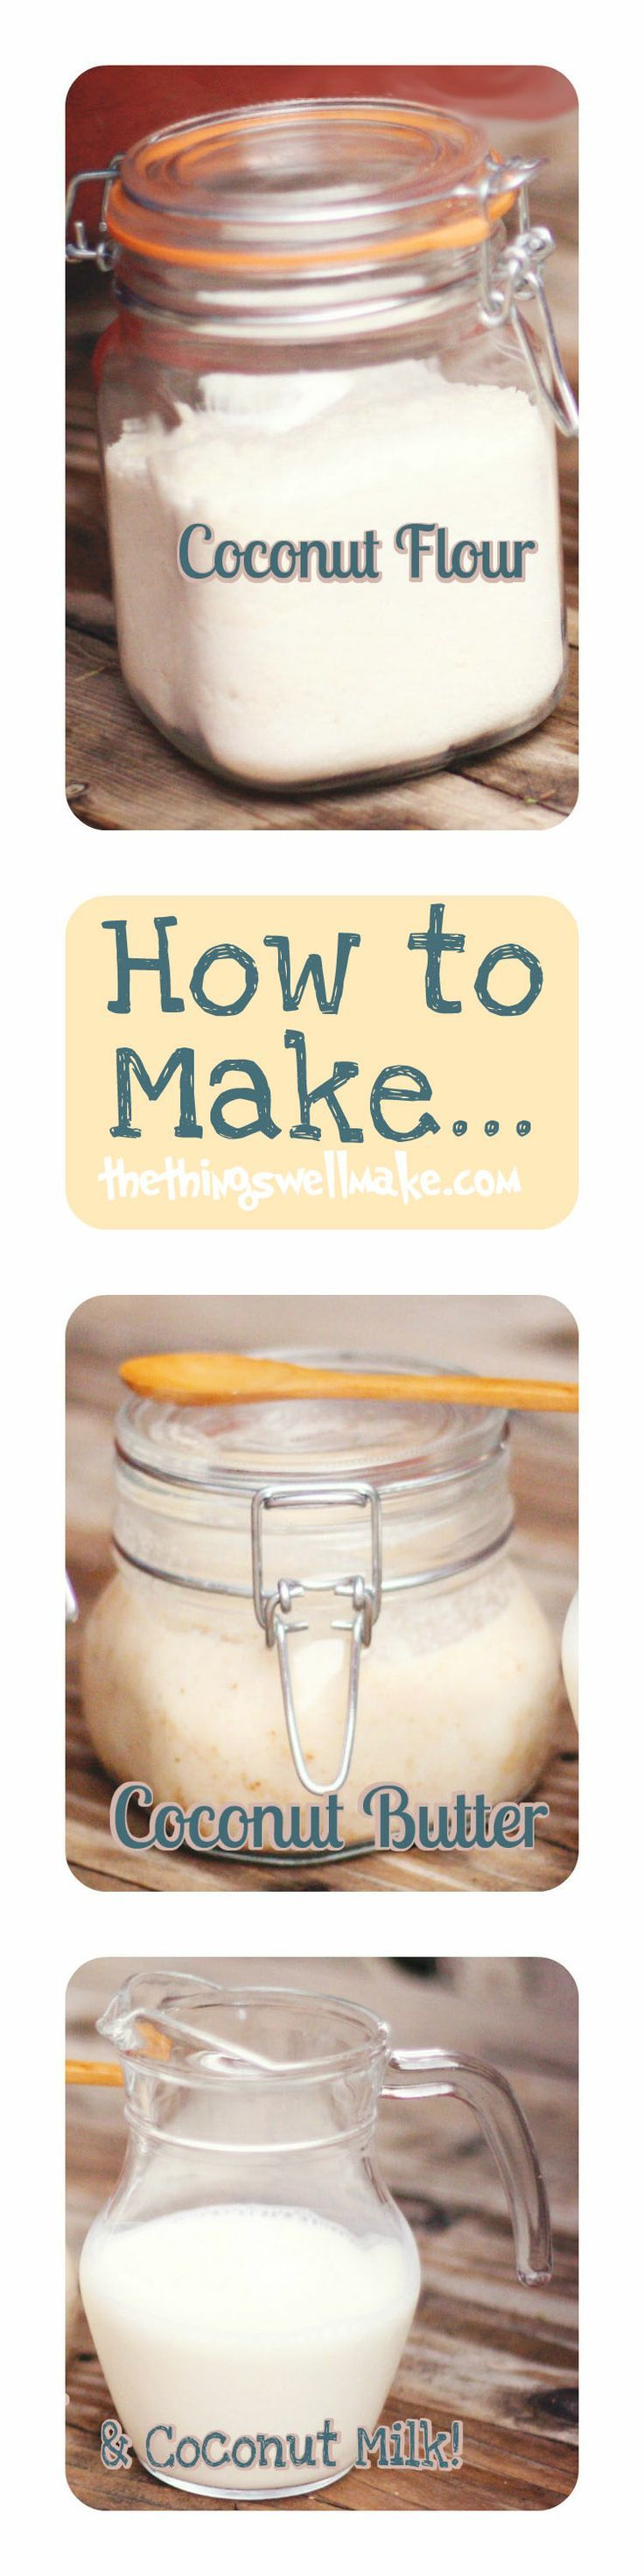 How to easily make your own Coconut Milk, Coconut Butter, and Coconut Flour using only desiccated (shredded) coconut and water. You can save money and avoid the possible BPA in cans!